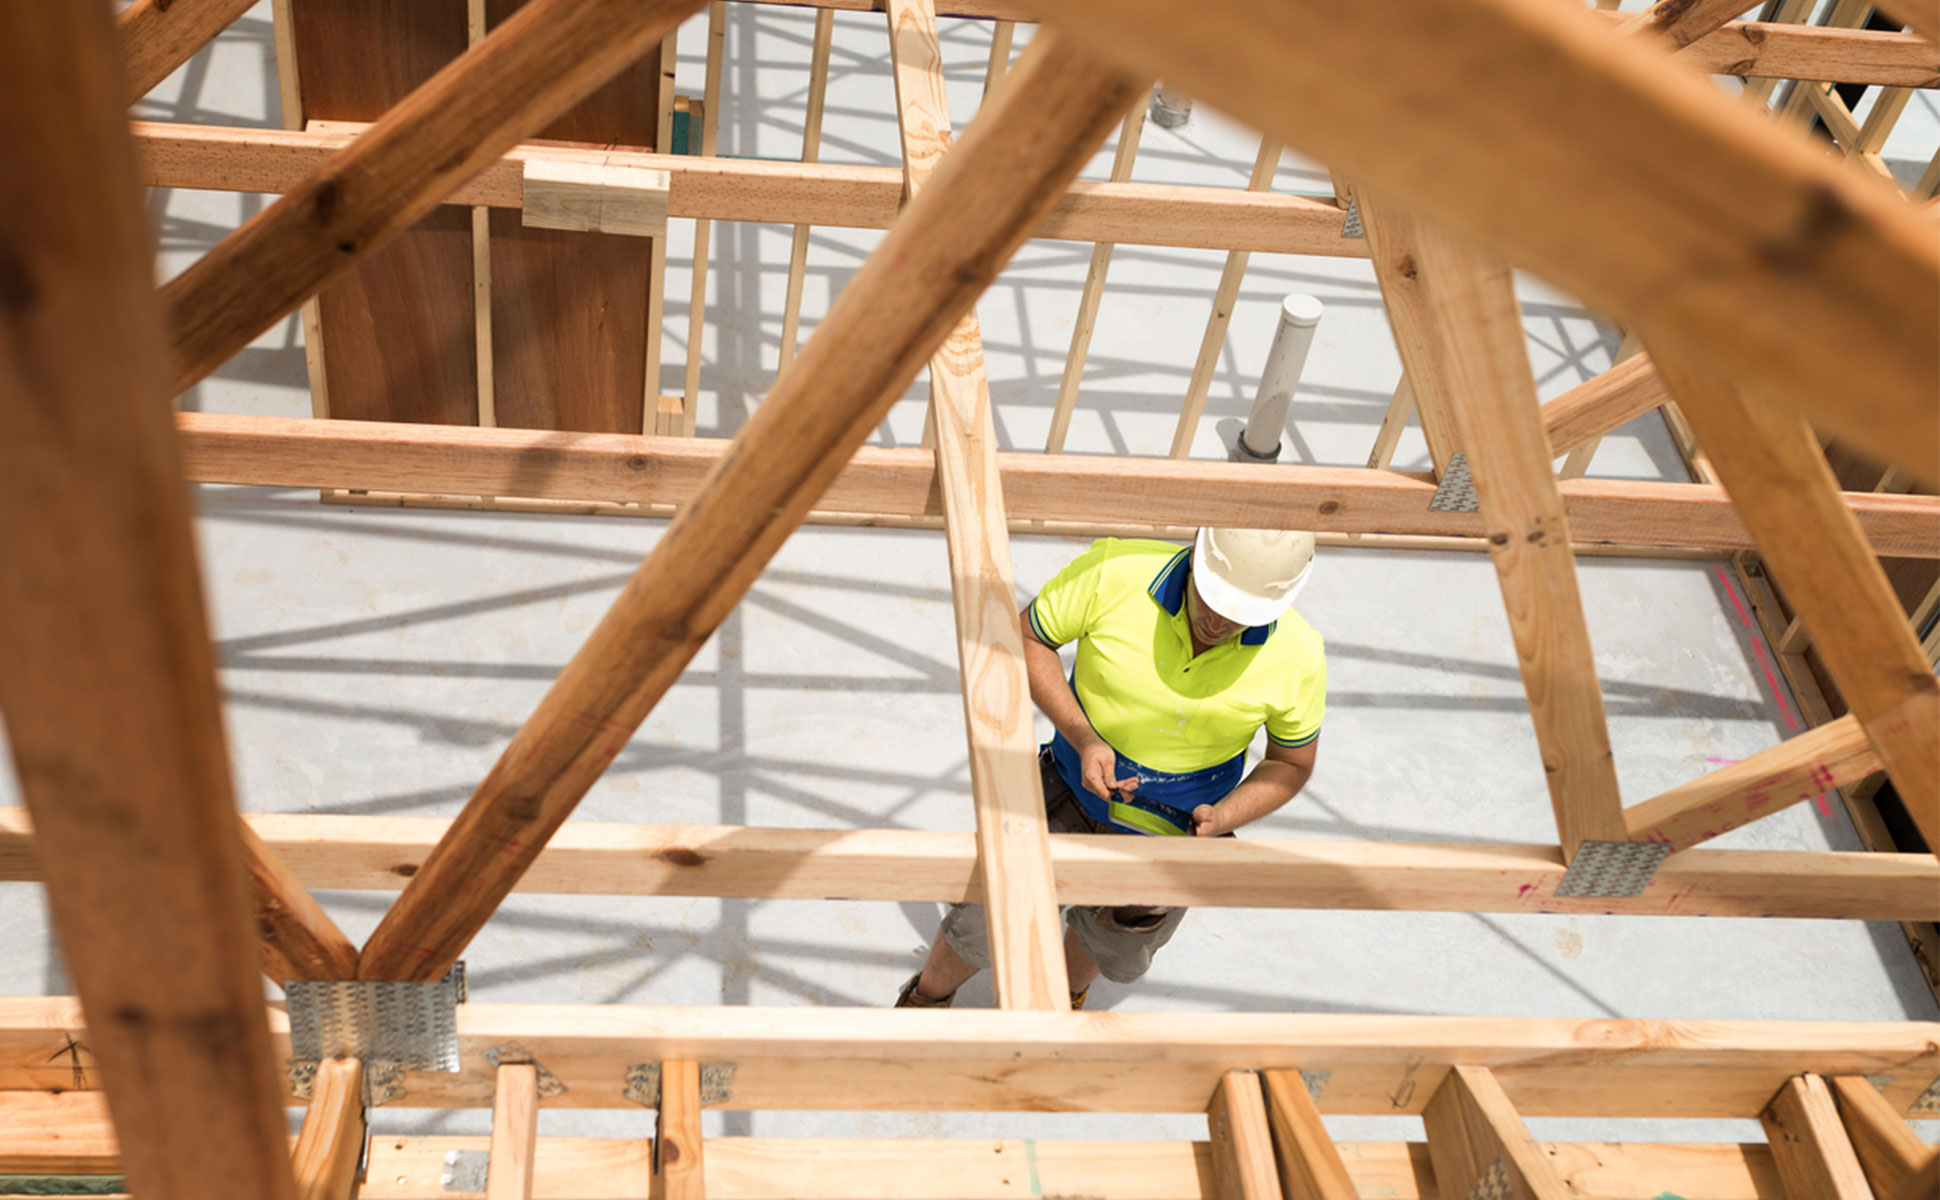 ▲ HomeBuilder stimulus and first-home incentives has fuelled positive property market sentiment.